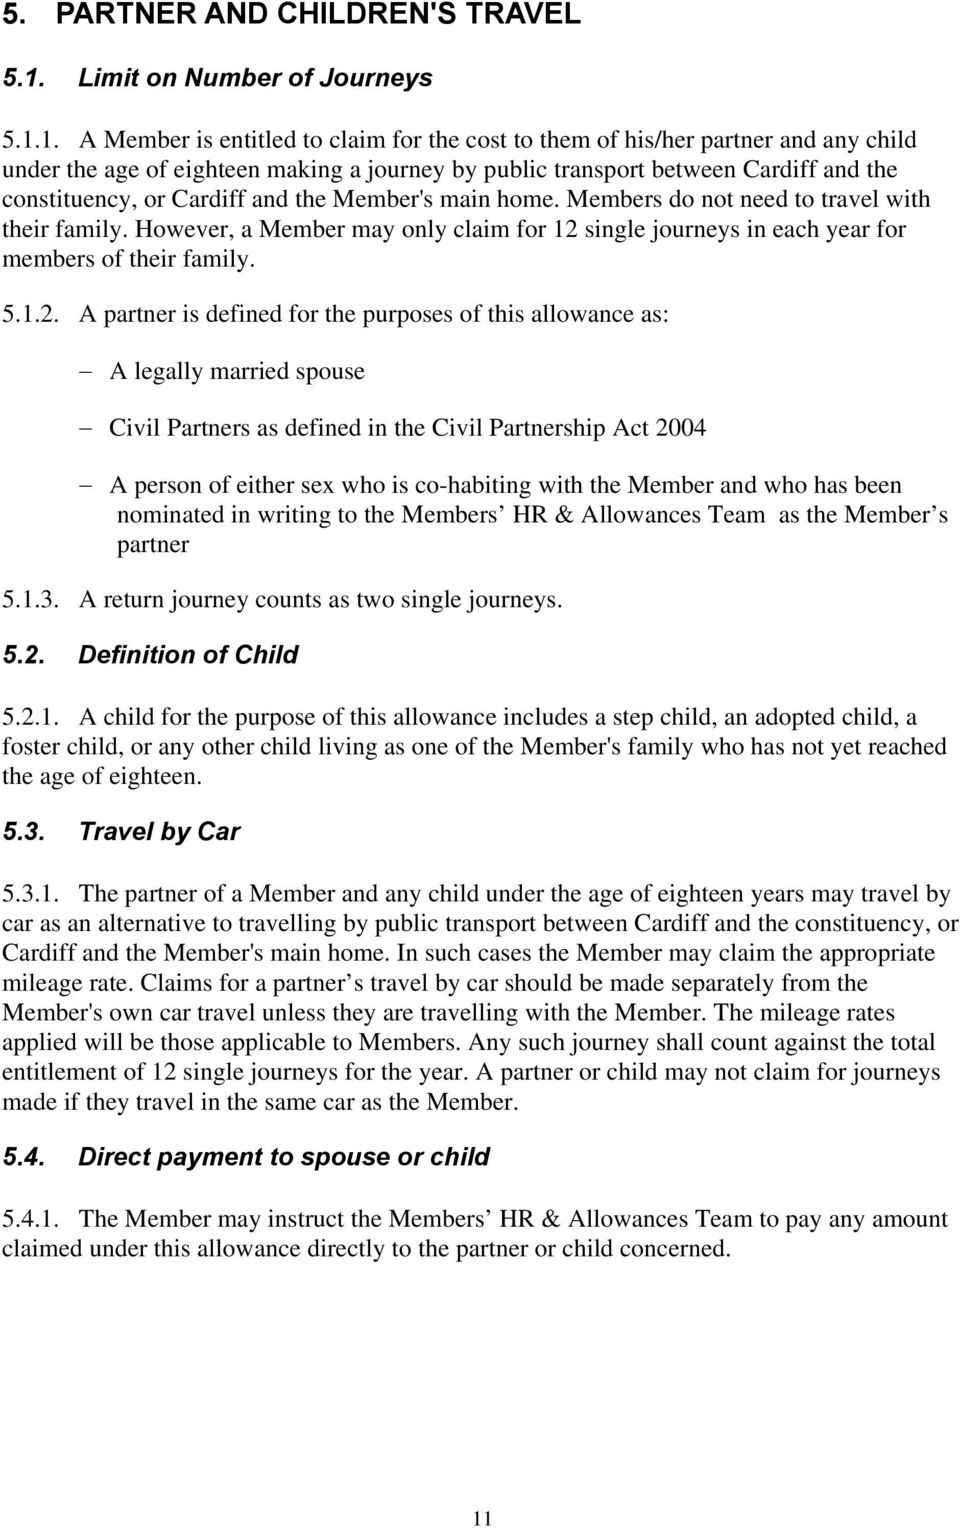 1. A Member is entitled to claim for the cost to them of his/her partner and any child under the age of eighteen making a journey by public transport between Cardiff and the constituency, or Cardiff